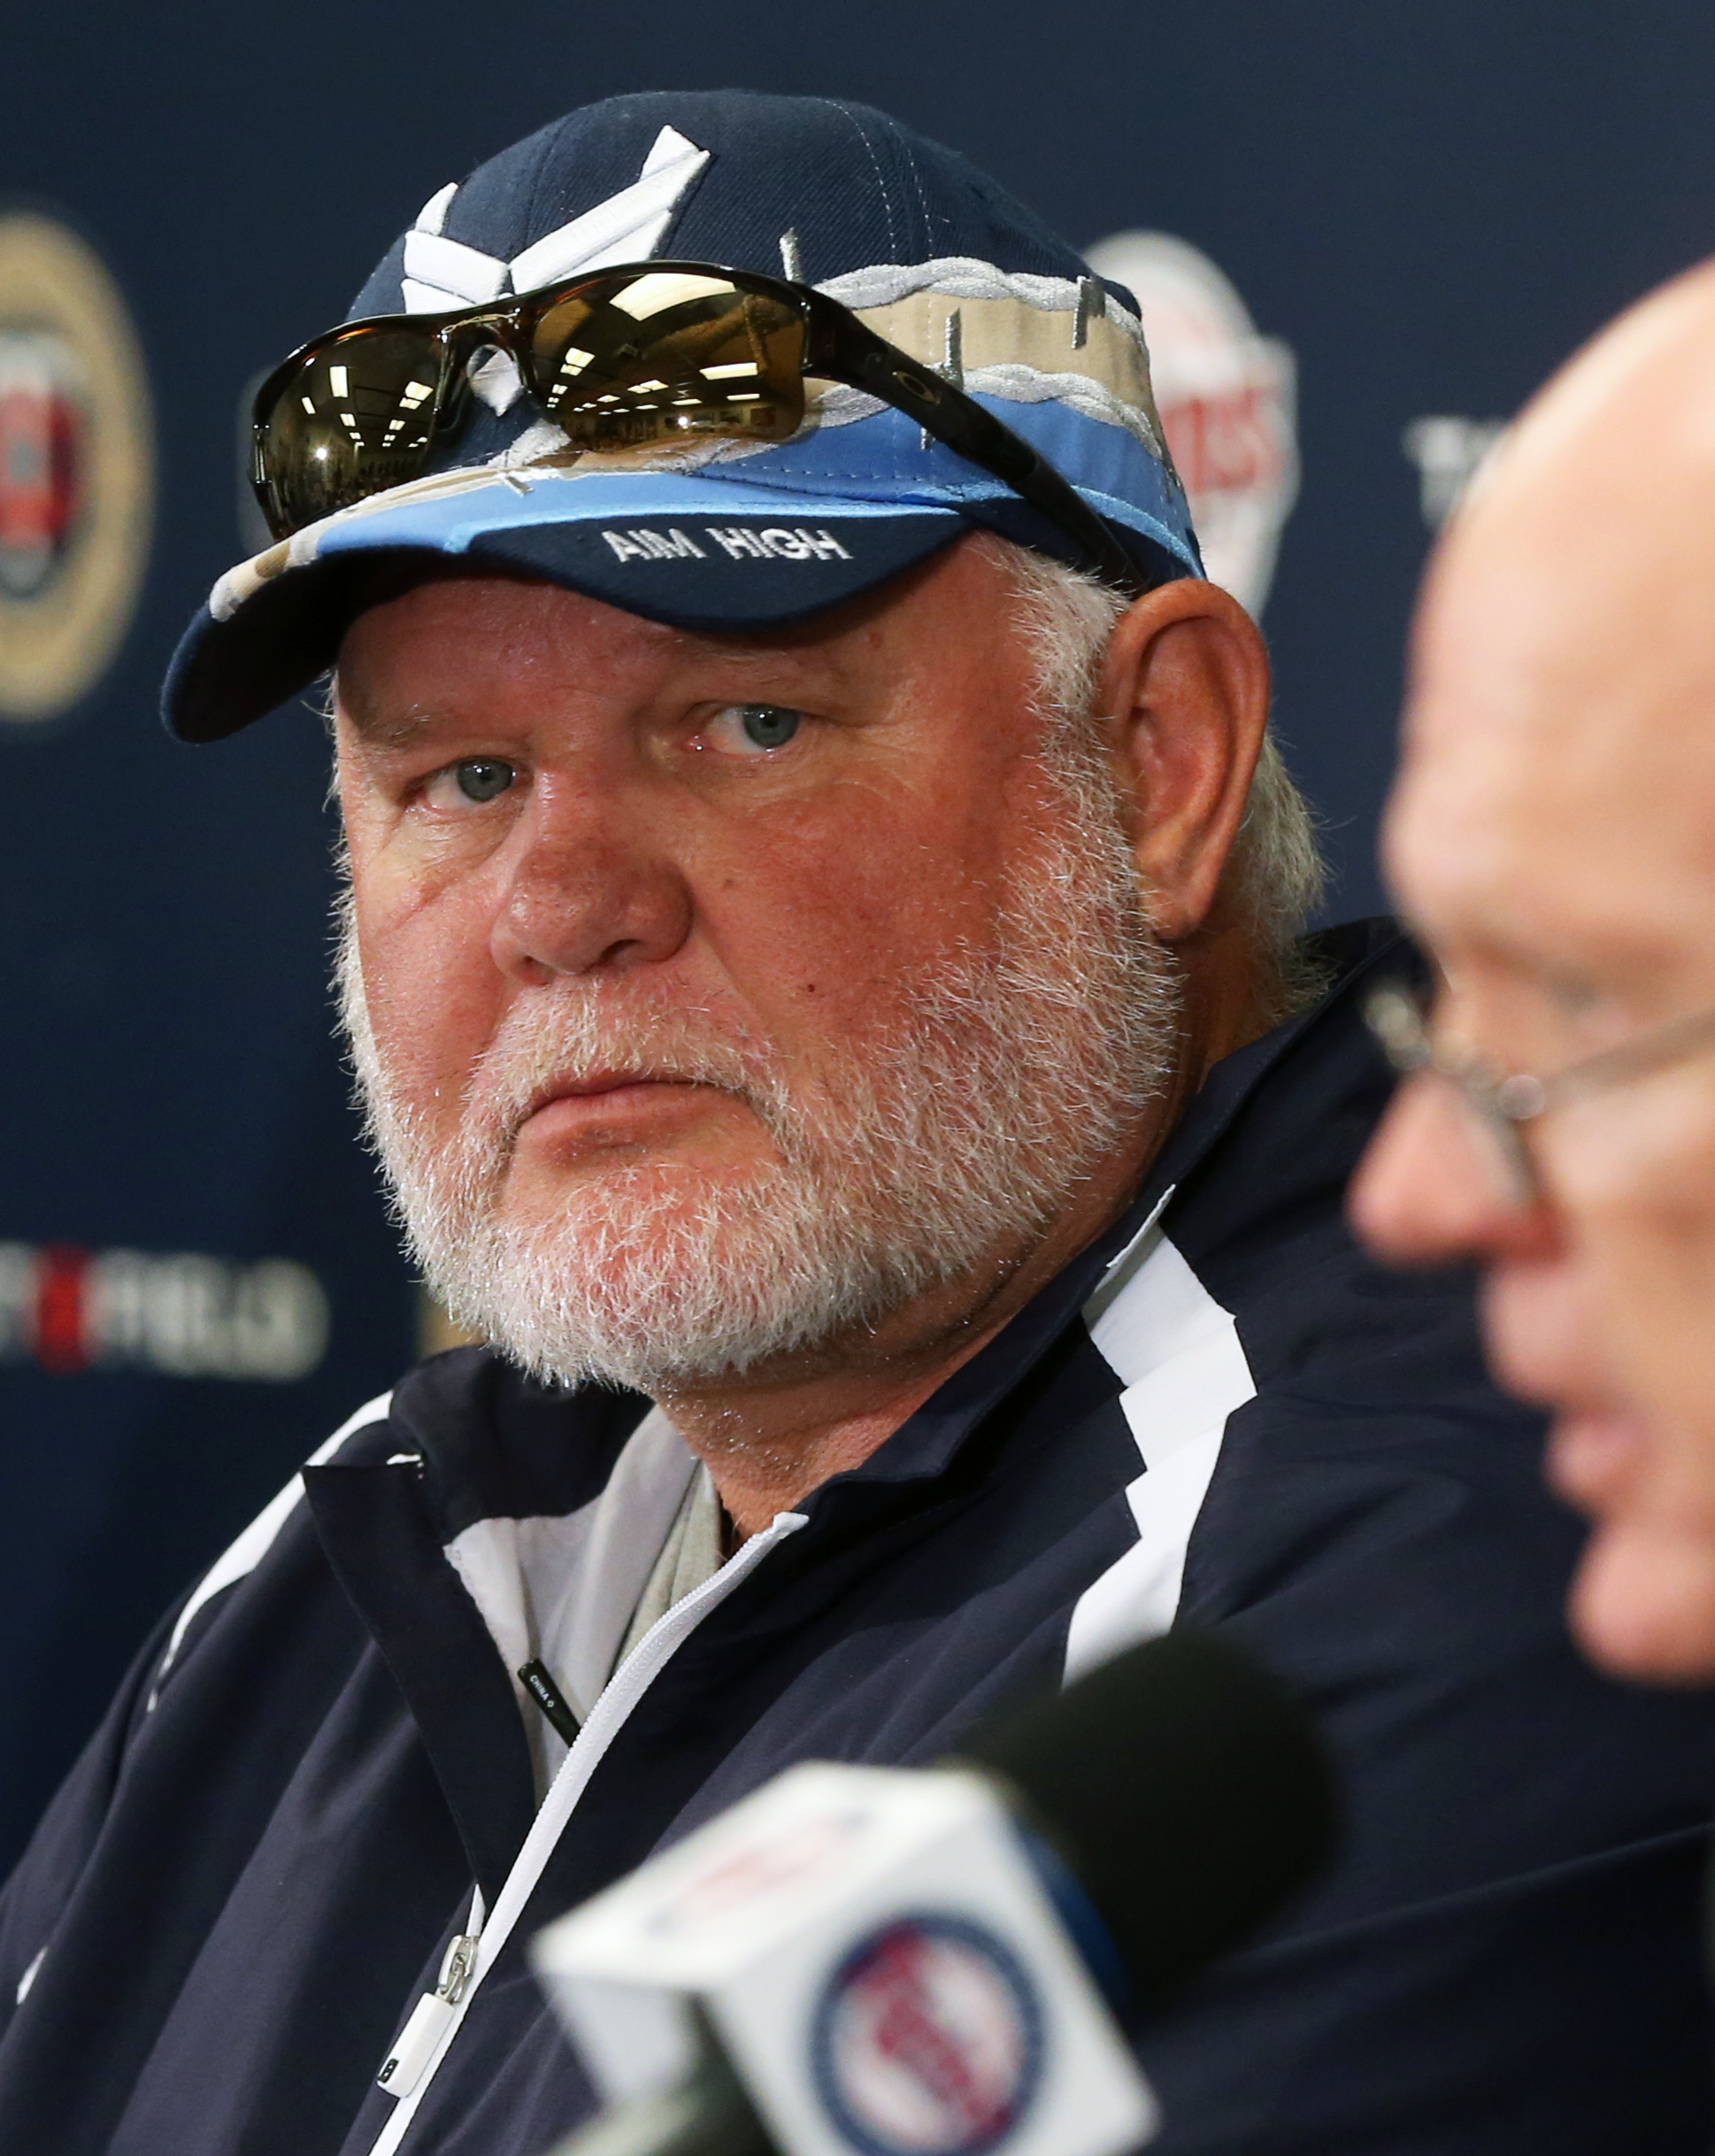 Former Minnesota Twins manager Ron Gardenhire, left, listens as Twins general manager Terry Ryan formally announces the firing of the Twins skipper during a baseball news conference, Monday, Sept. 29, 2014, in Minneapolis. (AP Photo/Jim Mone)